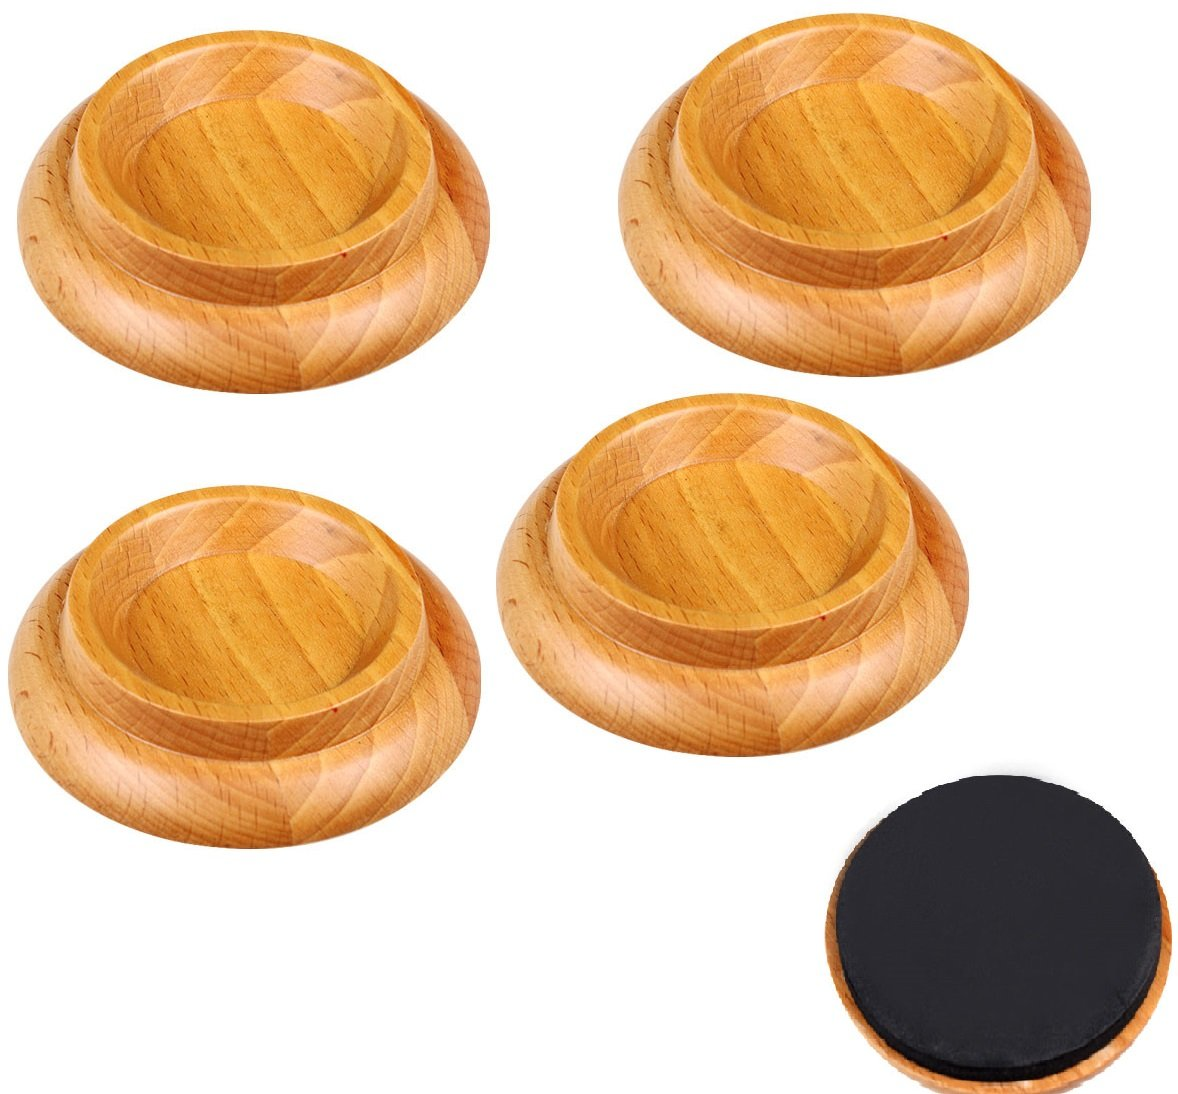 Anti slip Piano Caster Cups Furniture Wheel Caster Cups Floor Protectors with Non Skid Wood color [4 Pack]